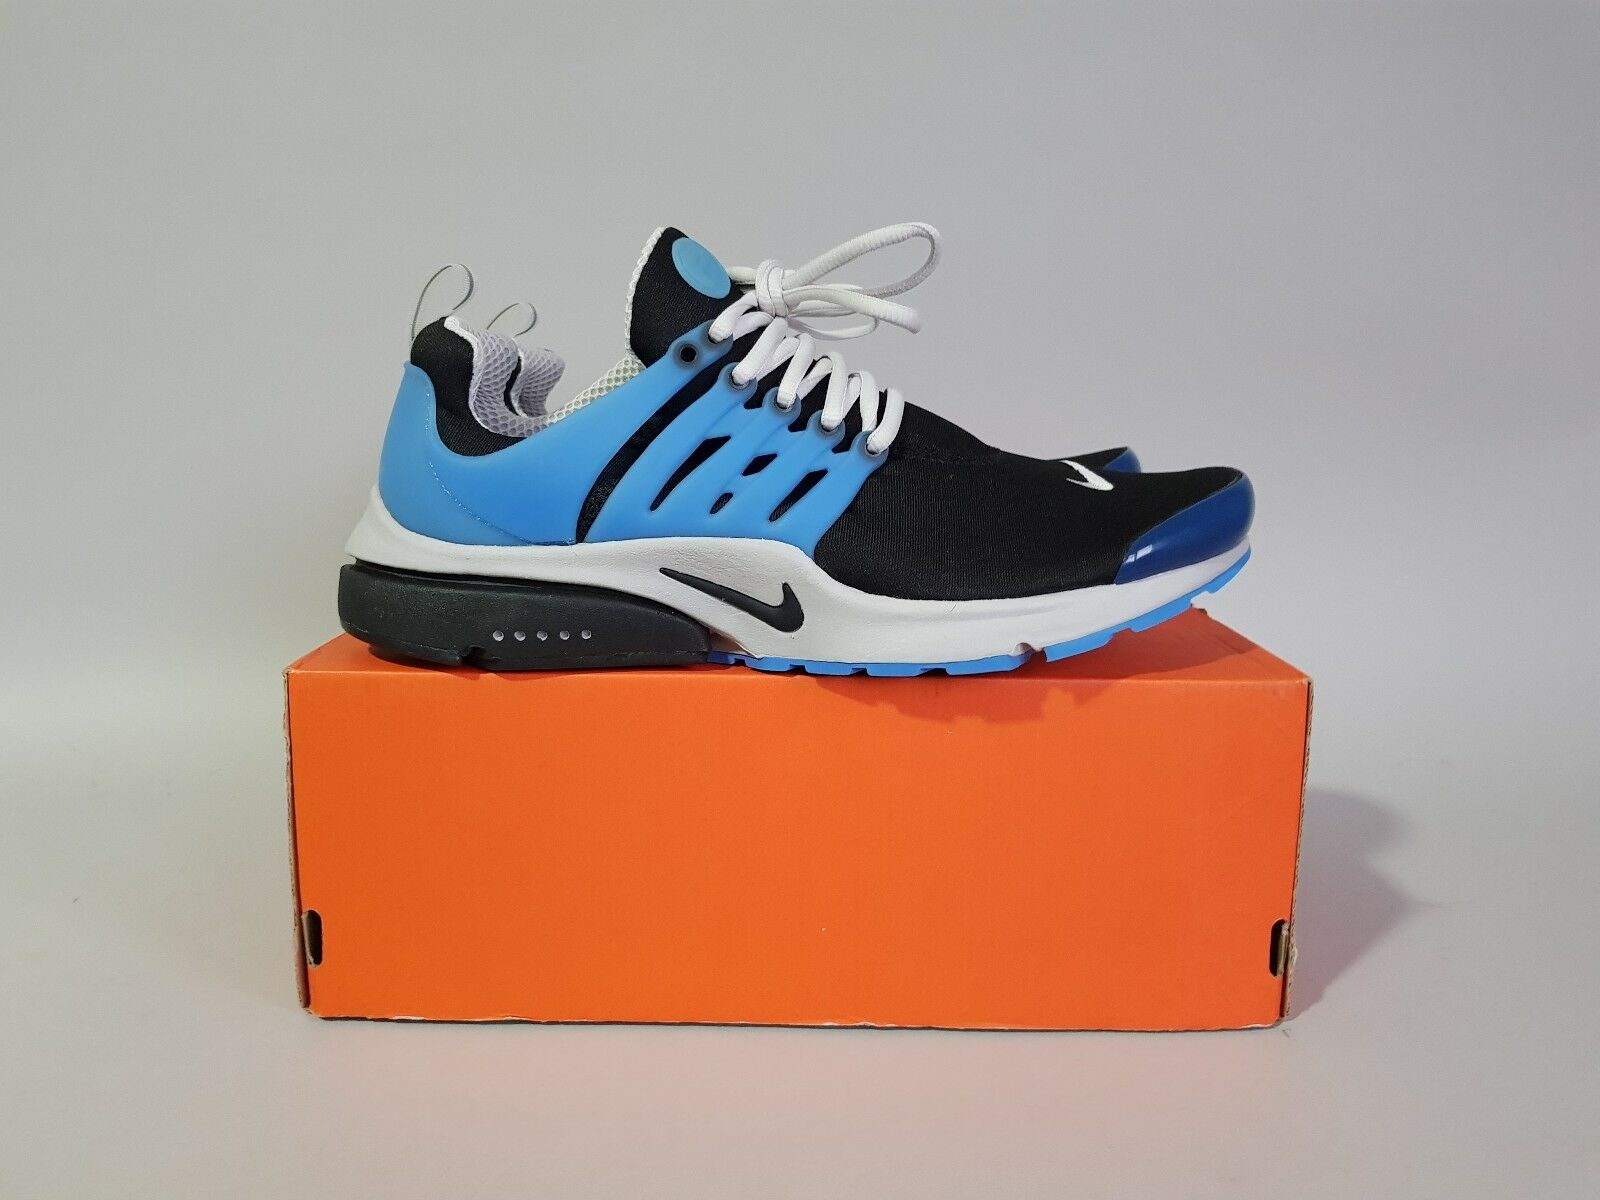 NIKE AIR PRESTO QS BLACK ZEN GREY HARBOUR blueeE UKXL USXL EUXL 789870-005